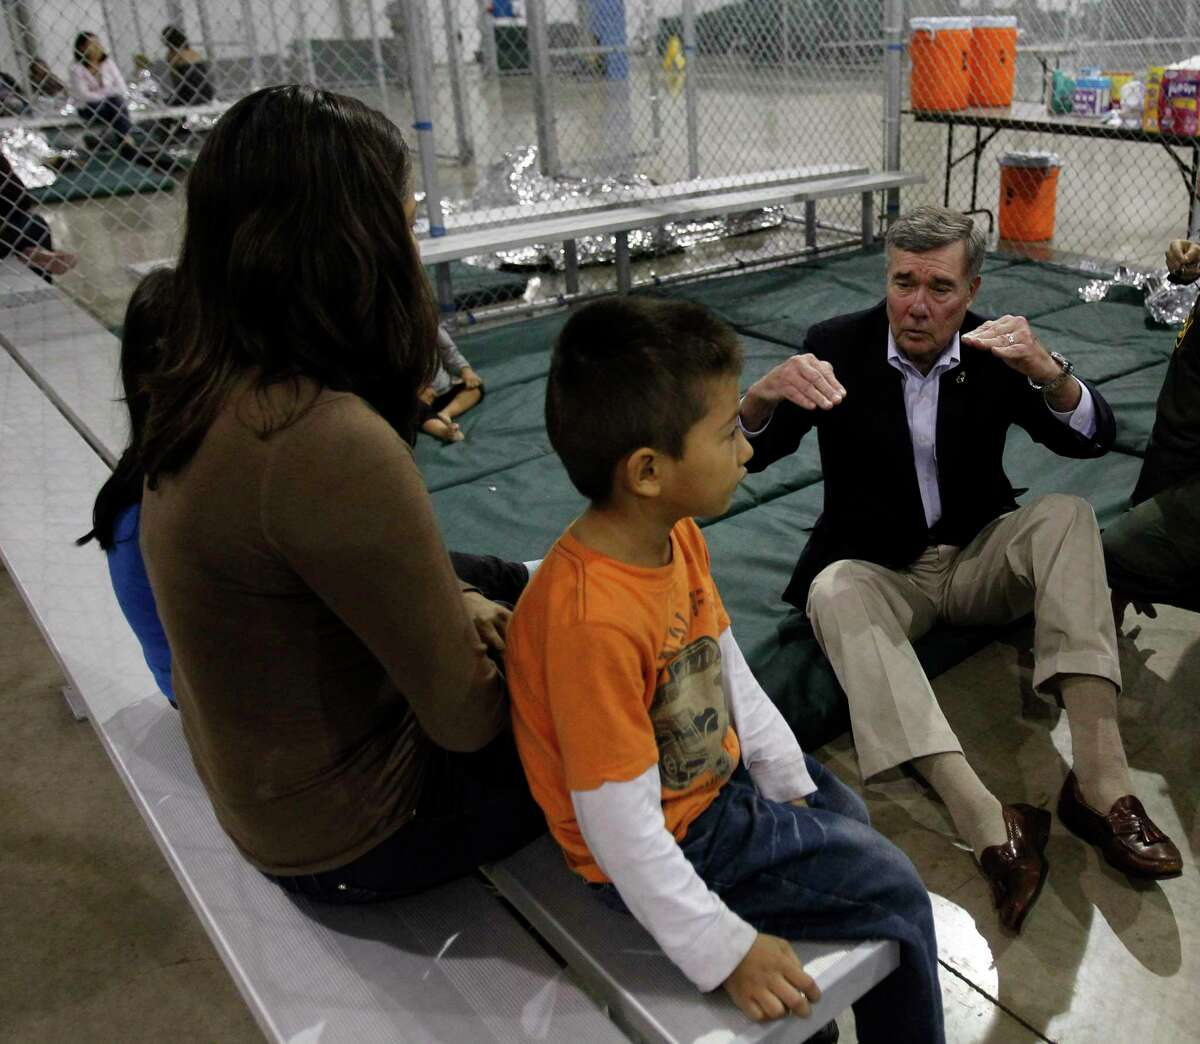 Gil Kerlikowske, former Commissioner of U.S. Customs and Border Protection, sat on the floor to speak with an immigrant family held in a McAllen processing center in 2015. Kerlikowske lauds President-elect Joe Biden's pick for Secretary of Homeland Security, Alejandro Mayorkas.